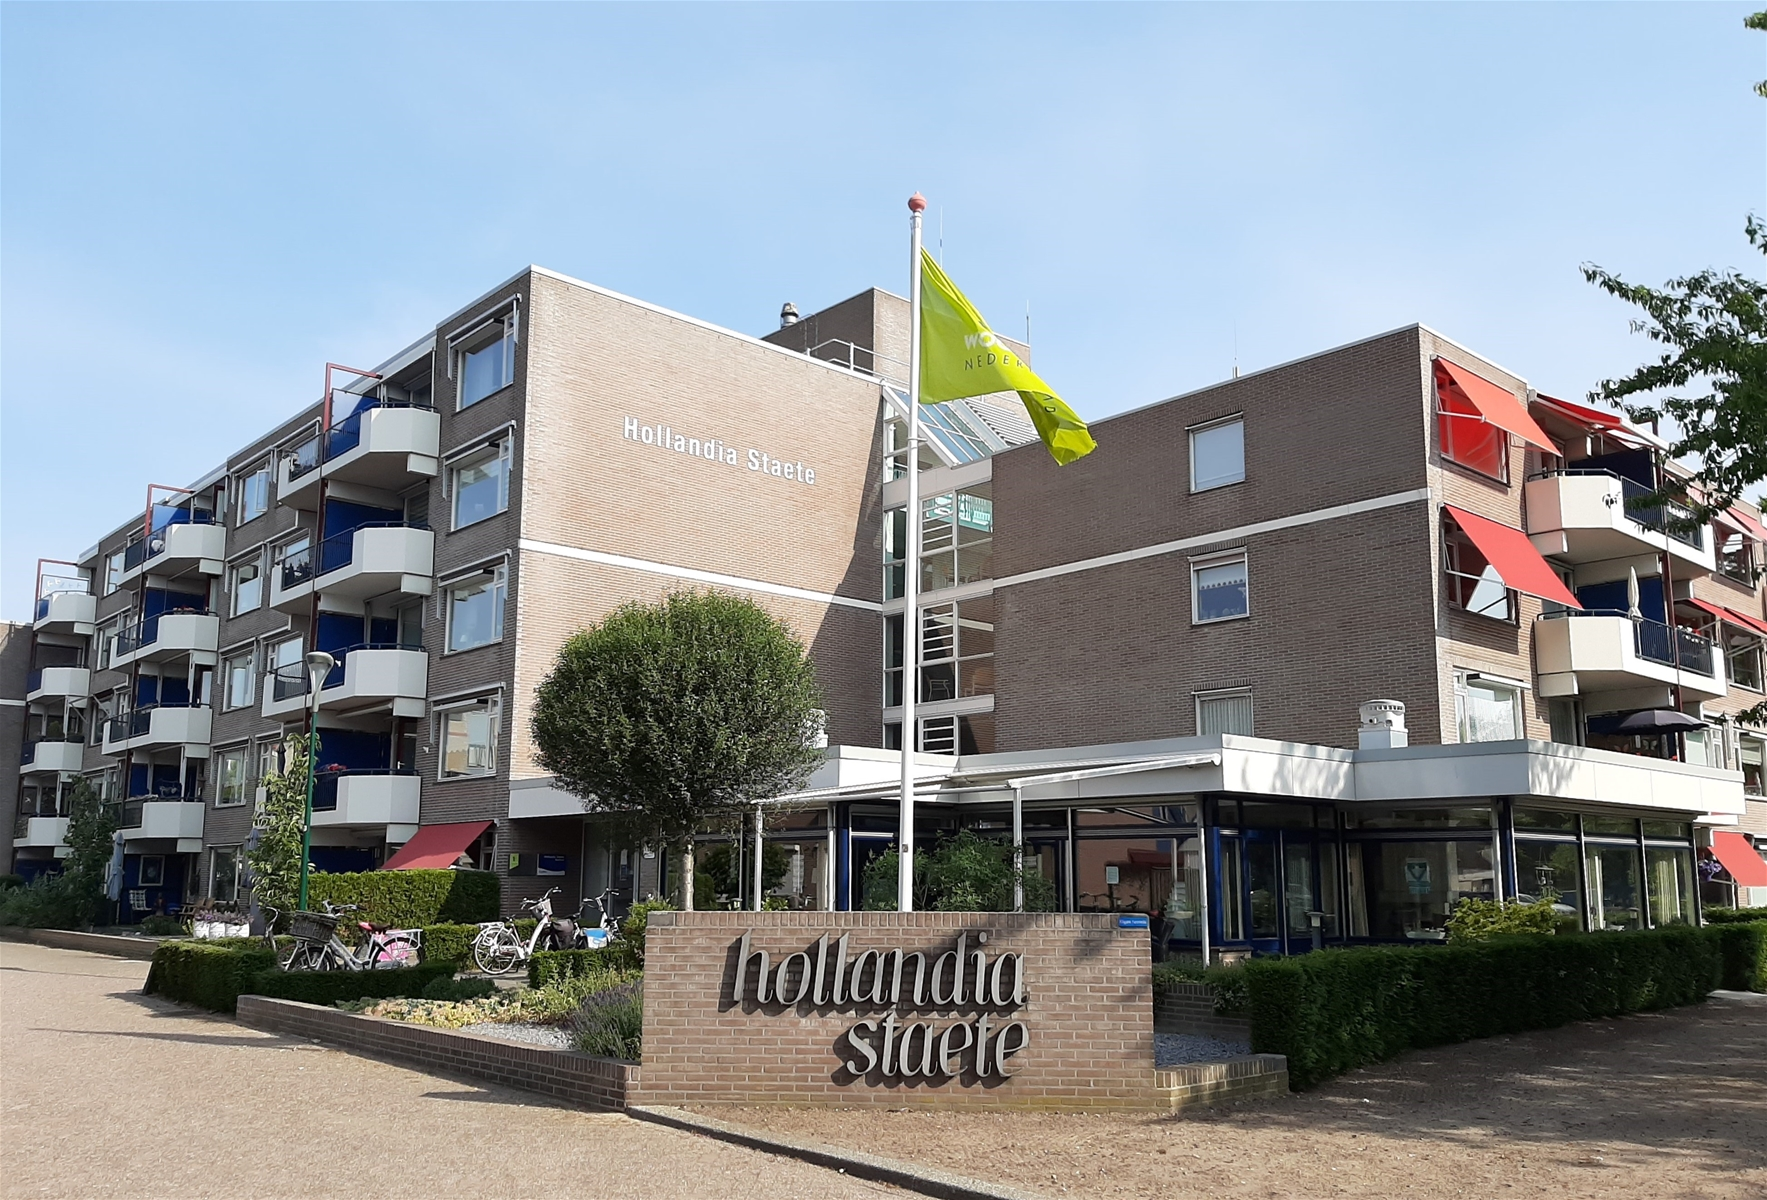 Flat Hollandia Staete